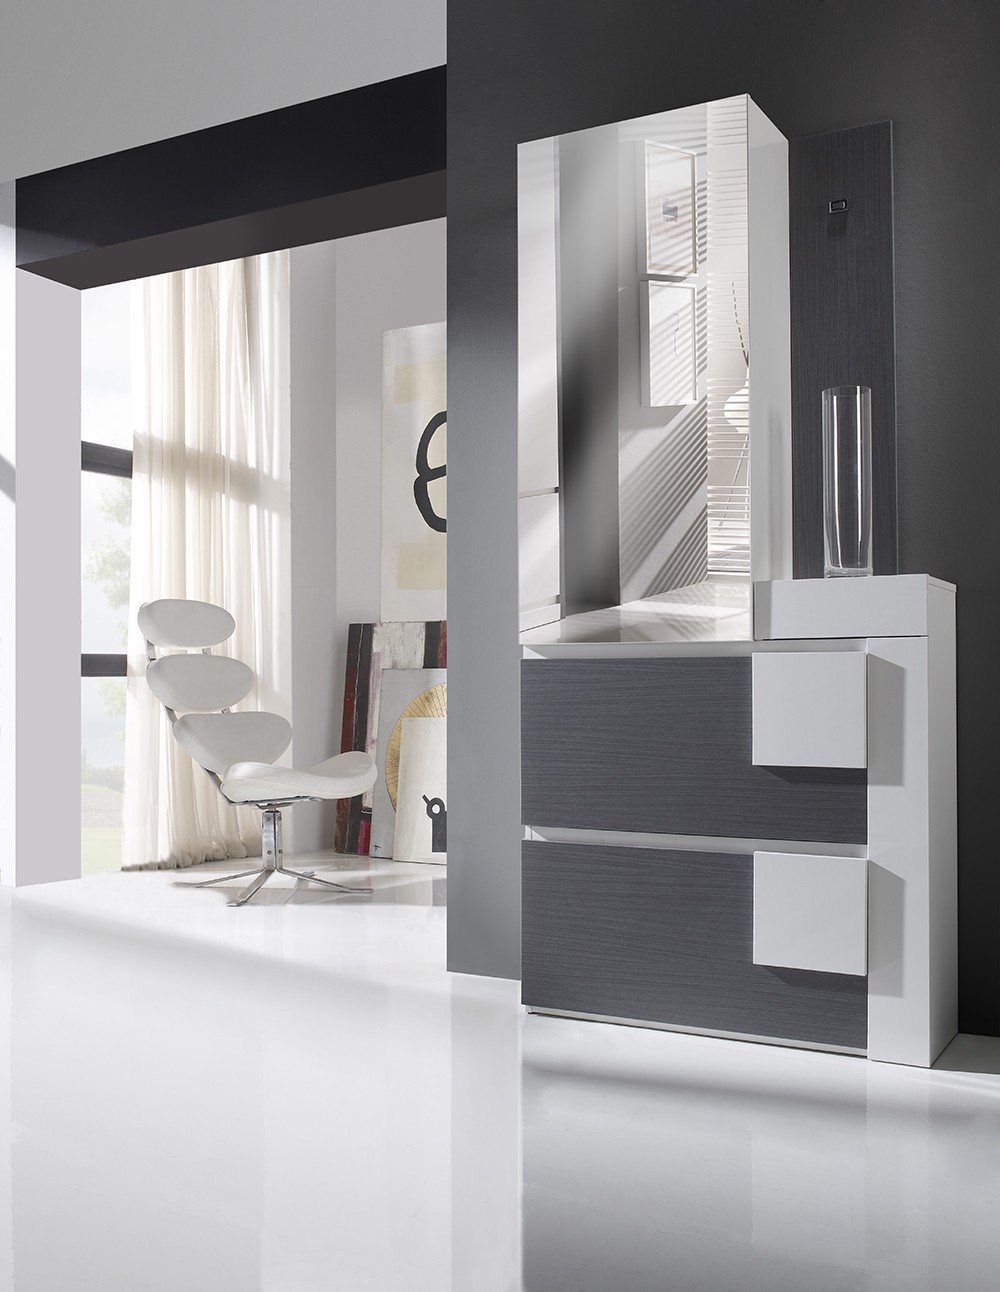 meuble entree moderne chaussures diogo zd1 meu dentr. Black Bedroom Furniture Sets. Home Design Ideas